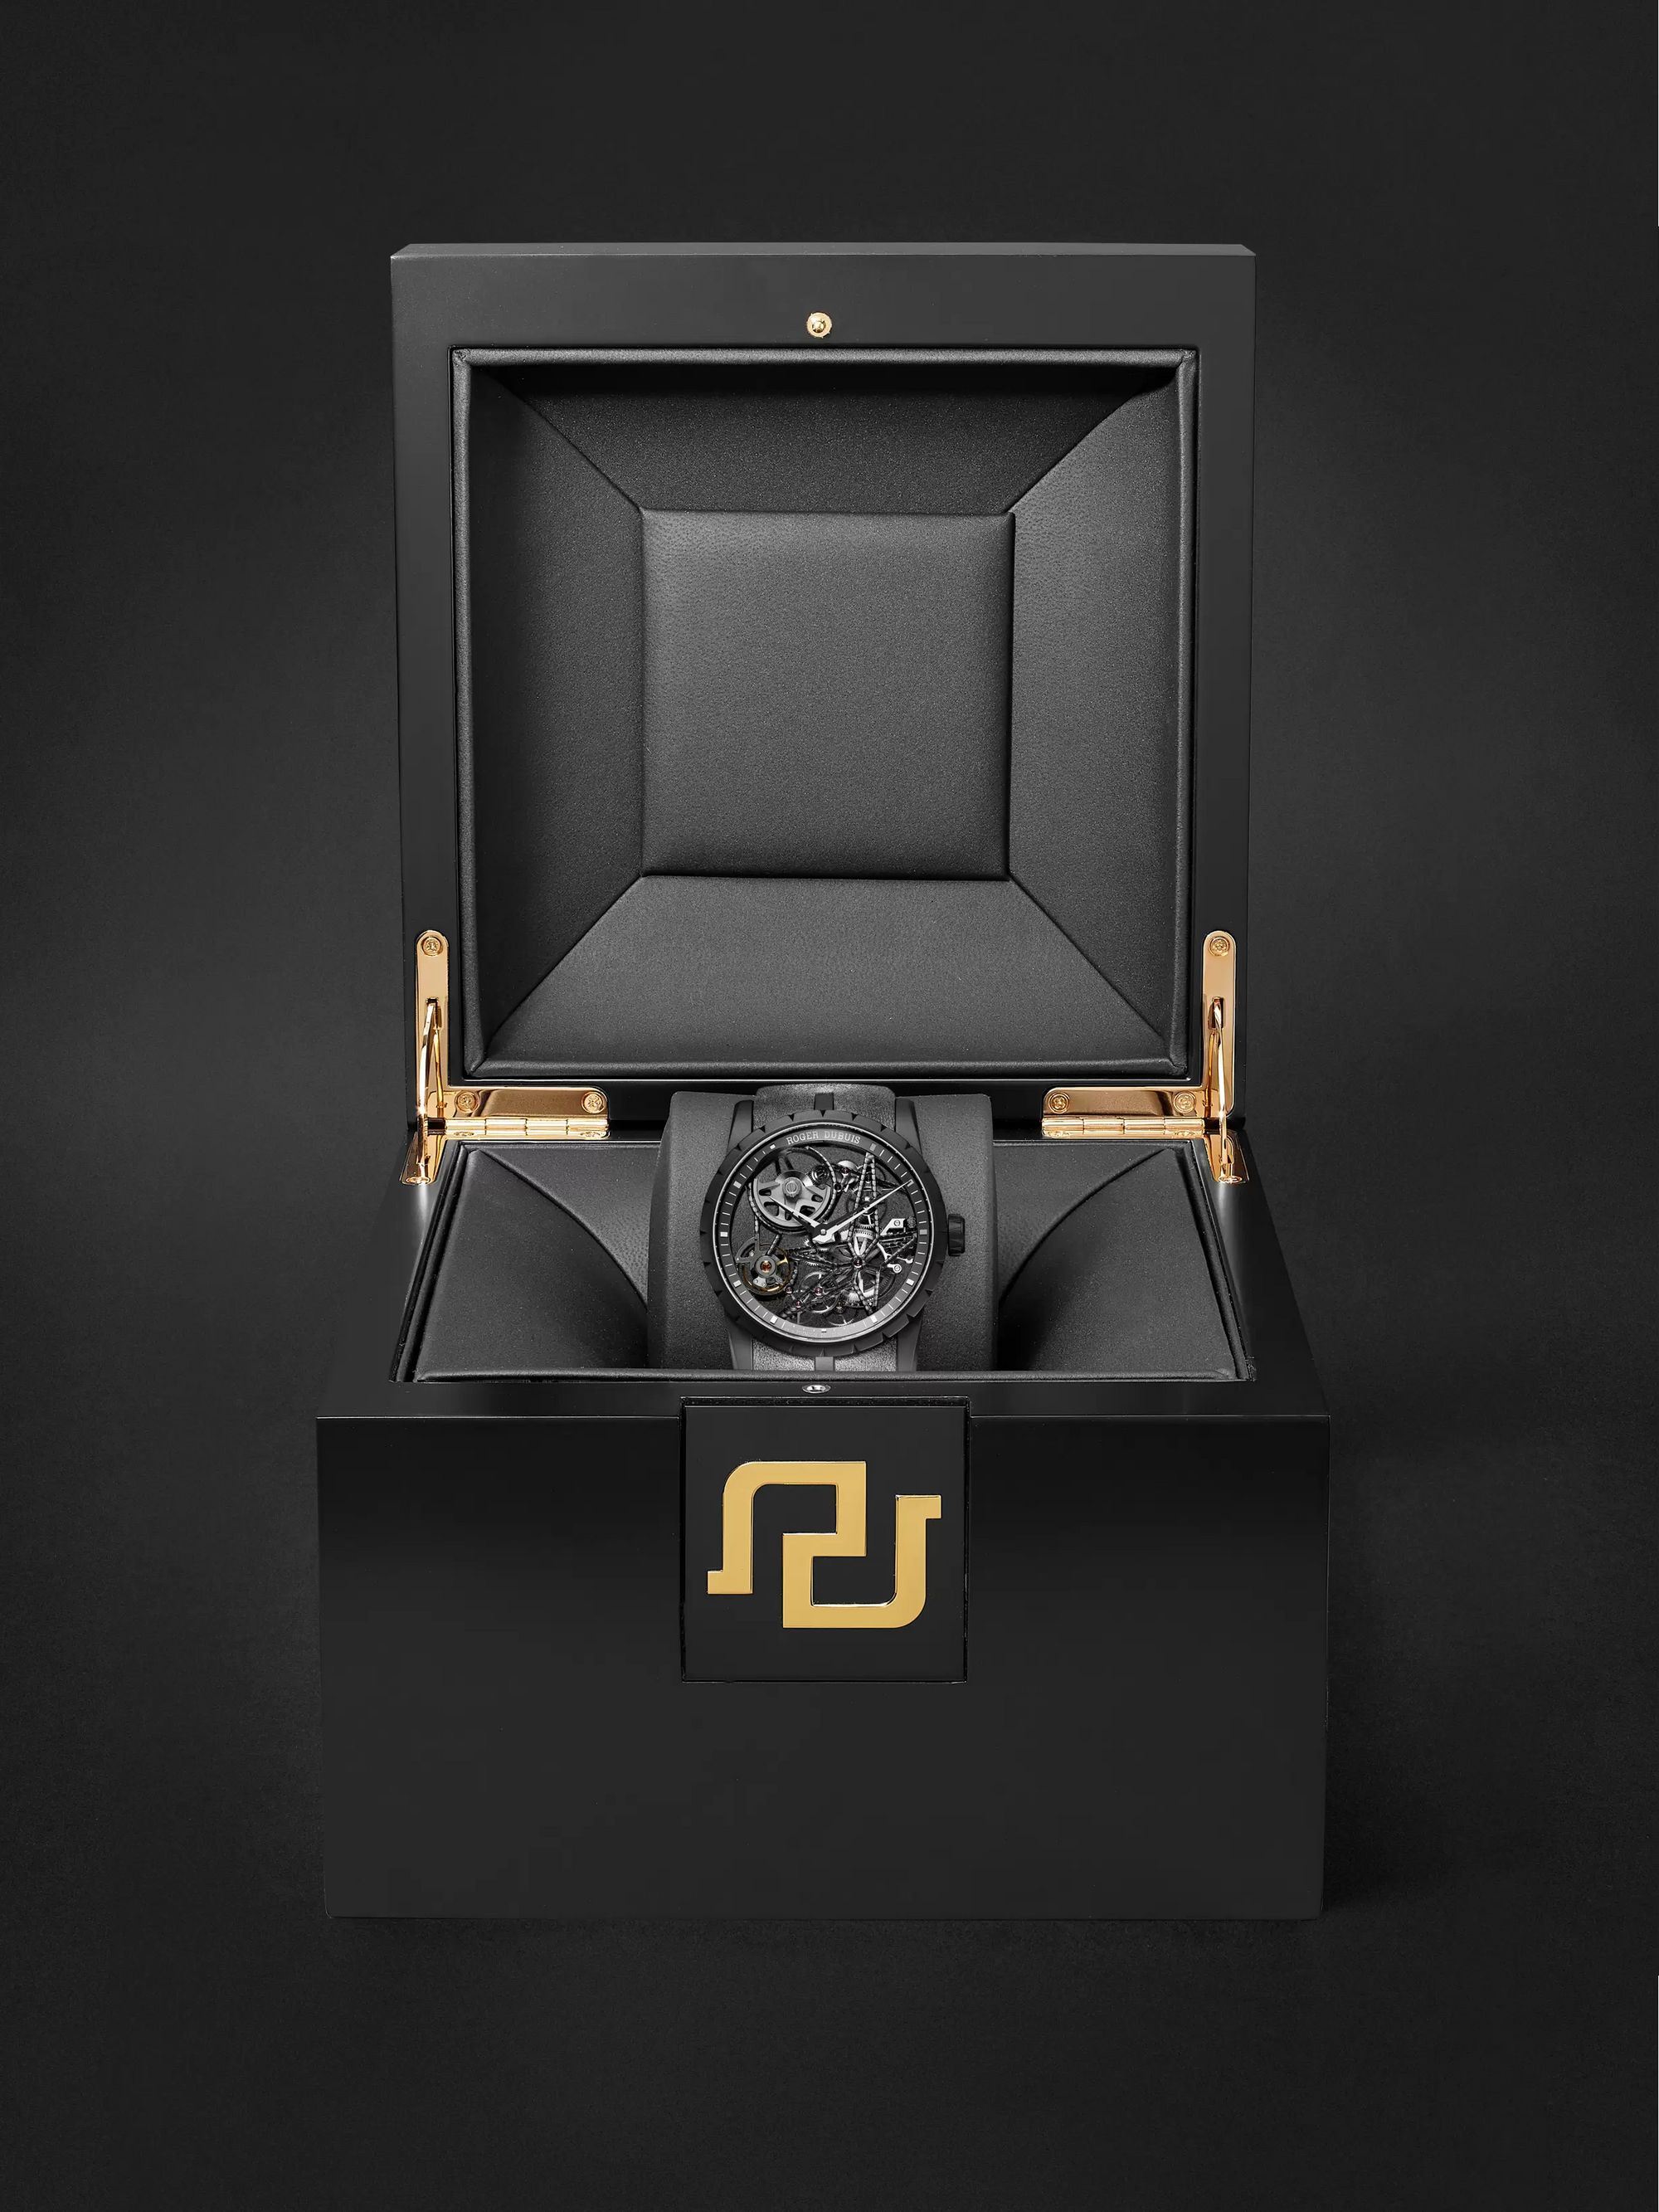 Roger Dubuis Excalibur Automatic Skeleton 42mm Titanium and Leather Watch, Ref. No. DBEX0726